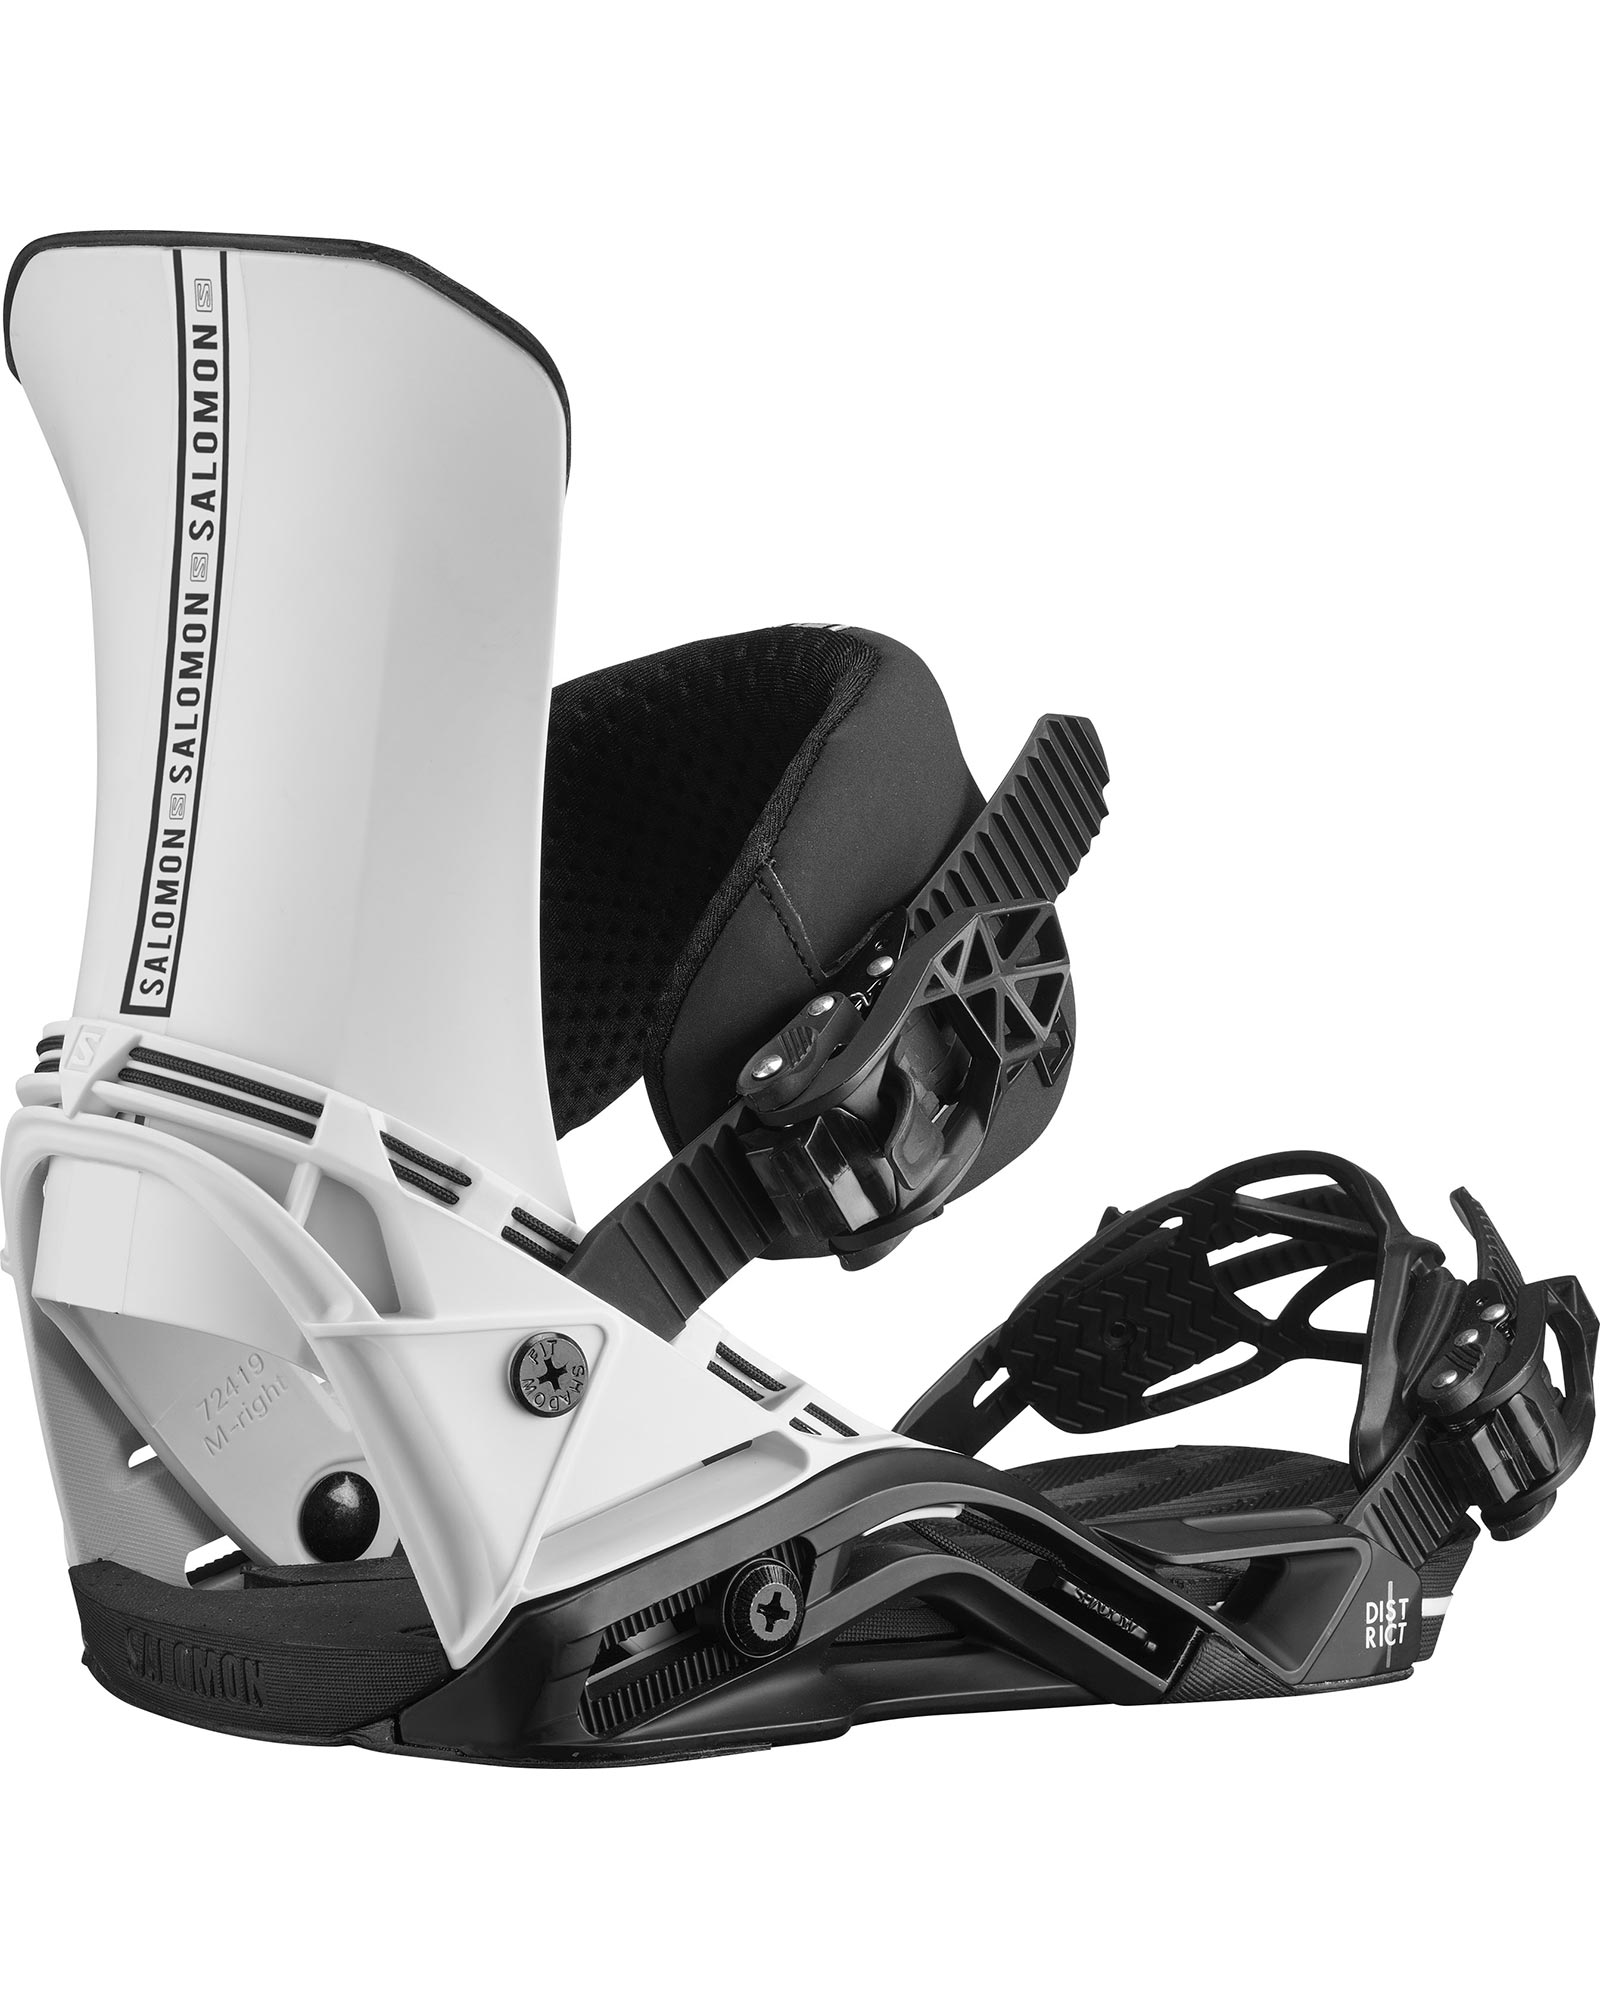 Salomon Snowboards Men's District Snowboard Bindings 2020 / 2021 0